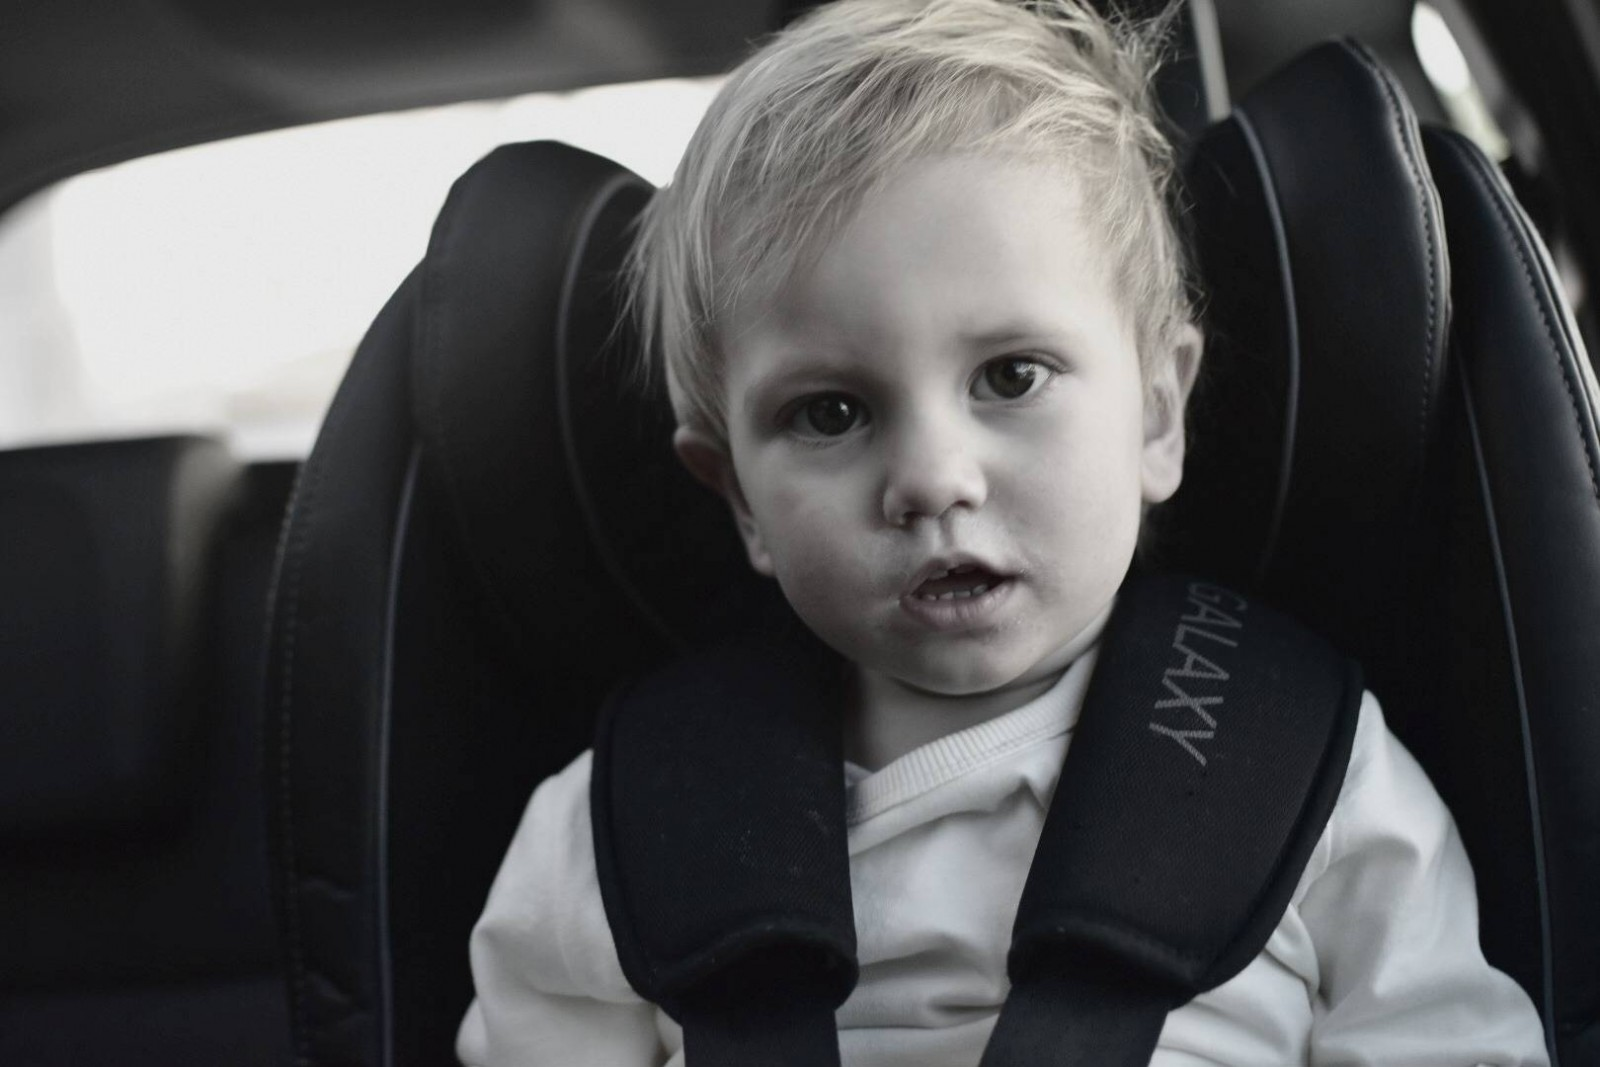 how to help your toddler enjoy car journeys better